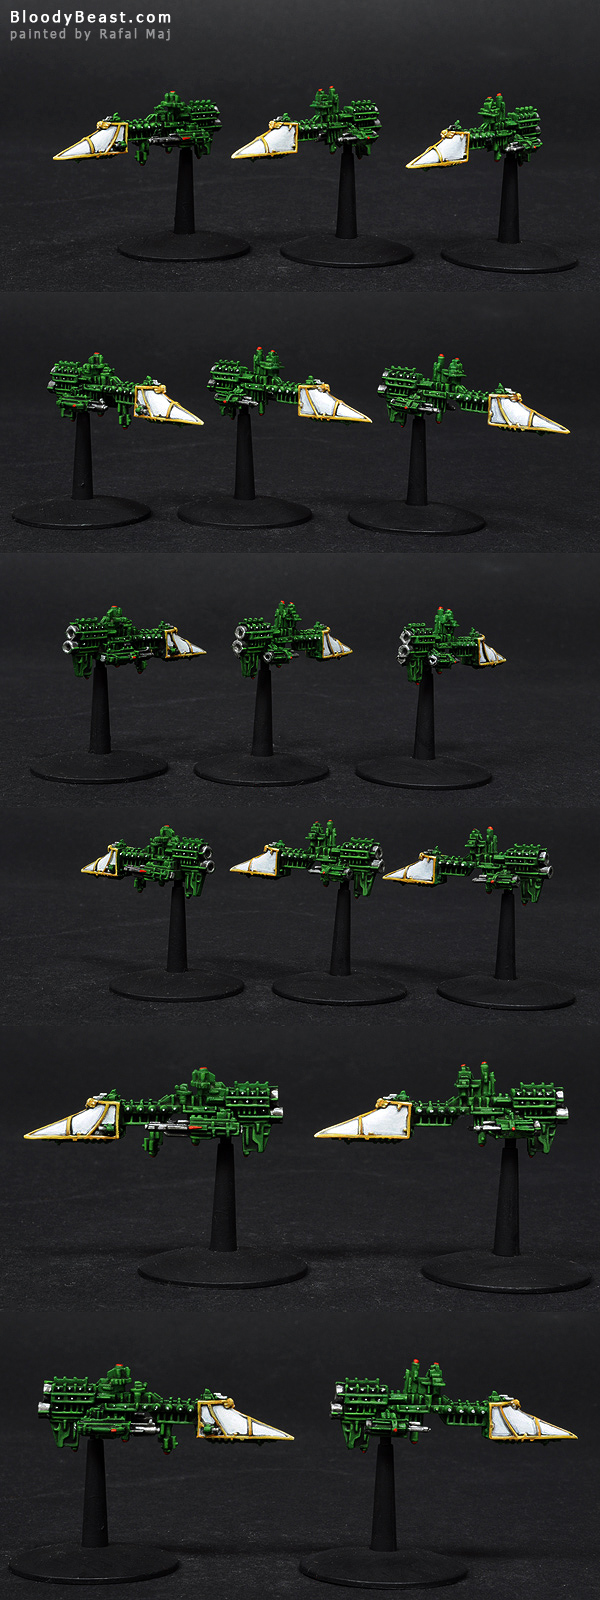 Imperial Sword Class Frigate painted by Rafal Maj (BloodyBeast.com)